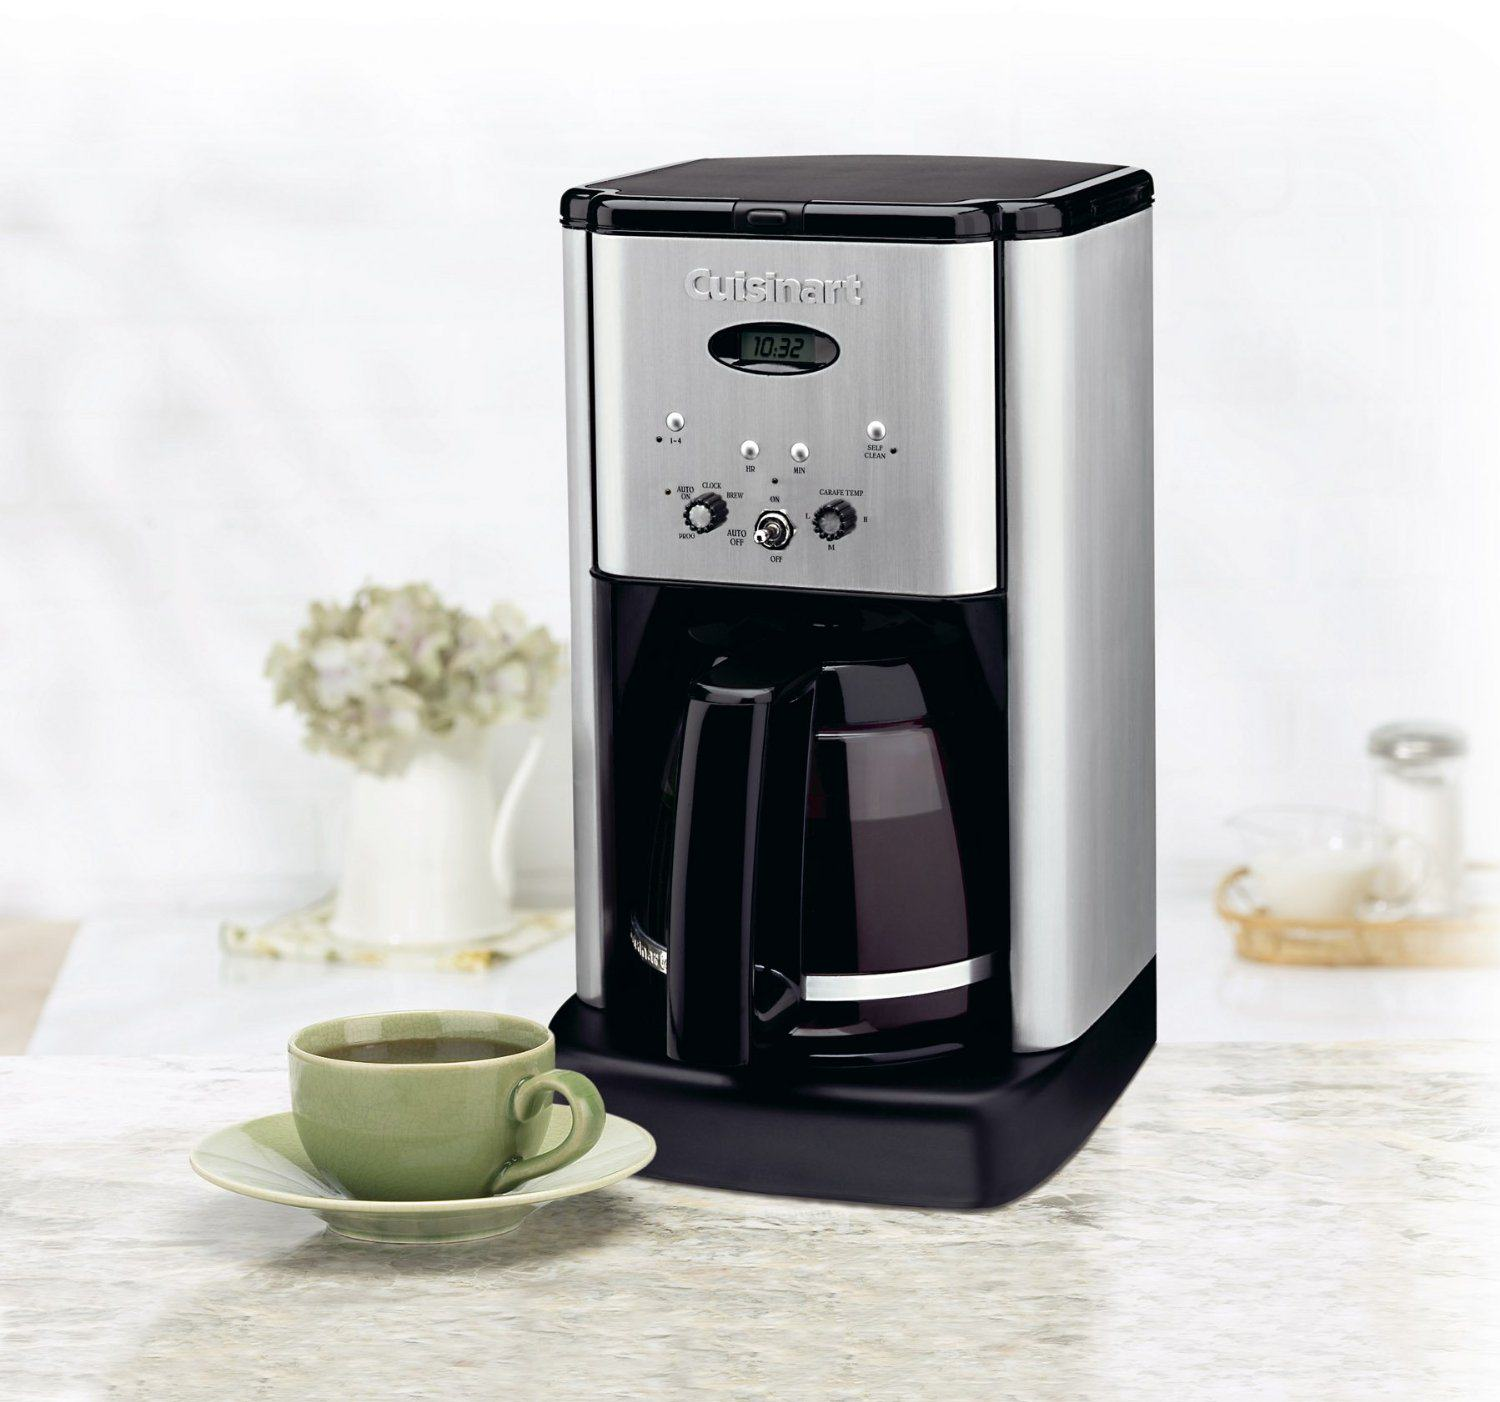 Cuisinart Coffee Maker DDC-1200